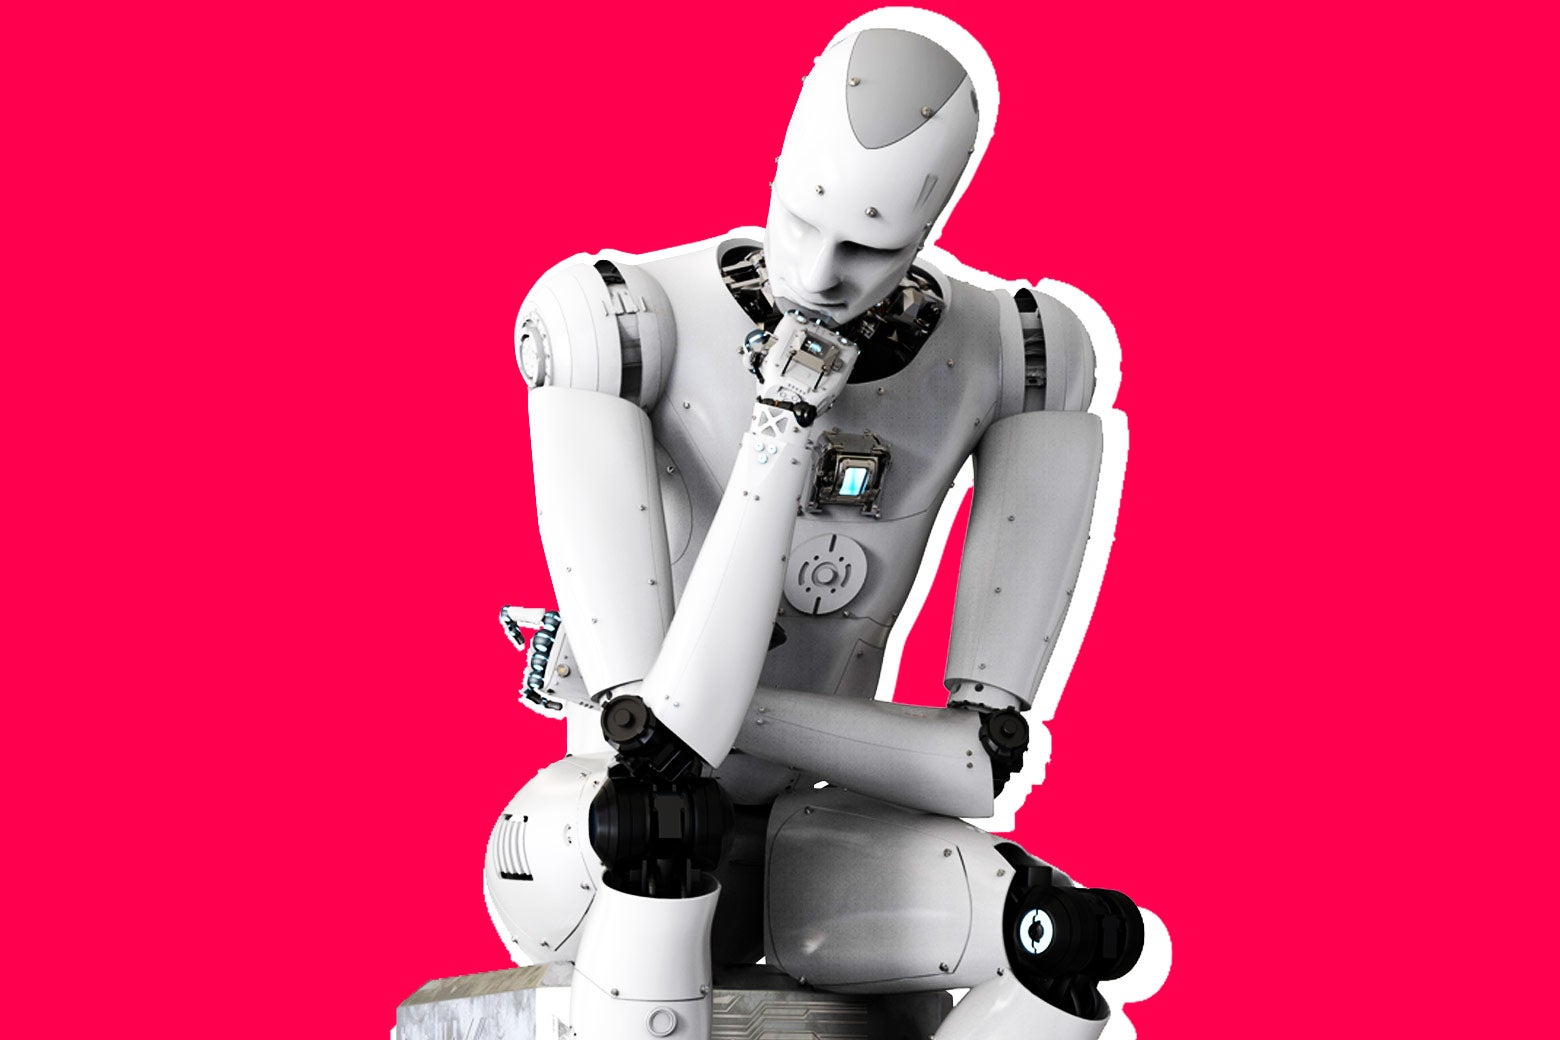 Photo illustration: a robot in a thinking pose.